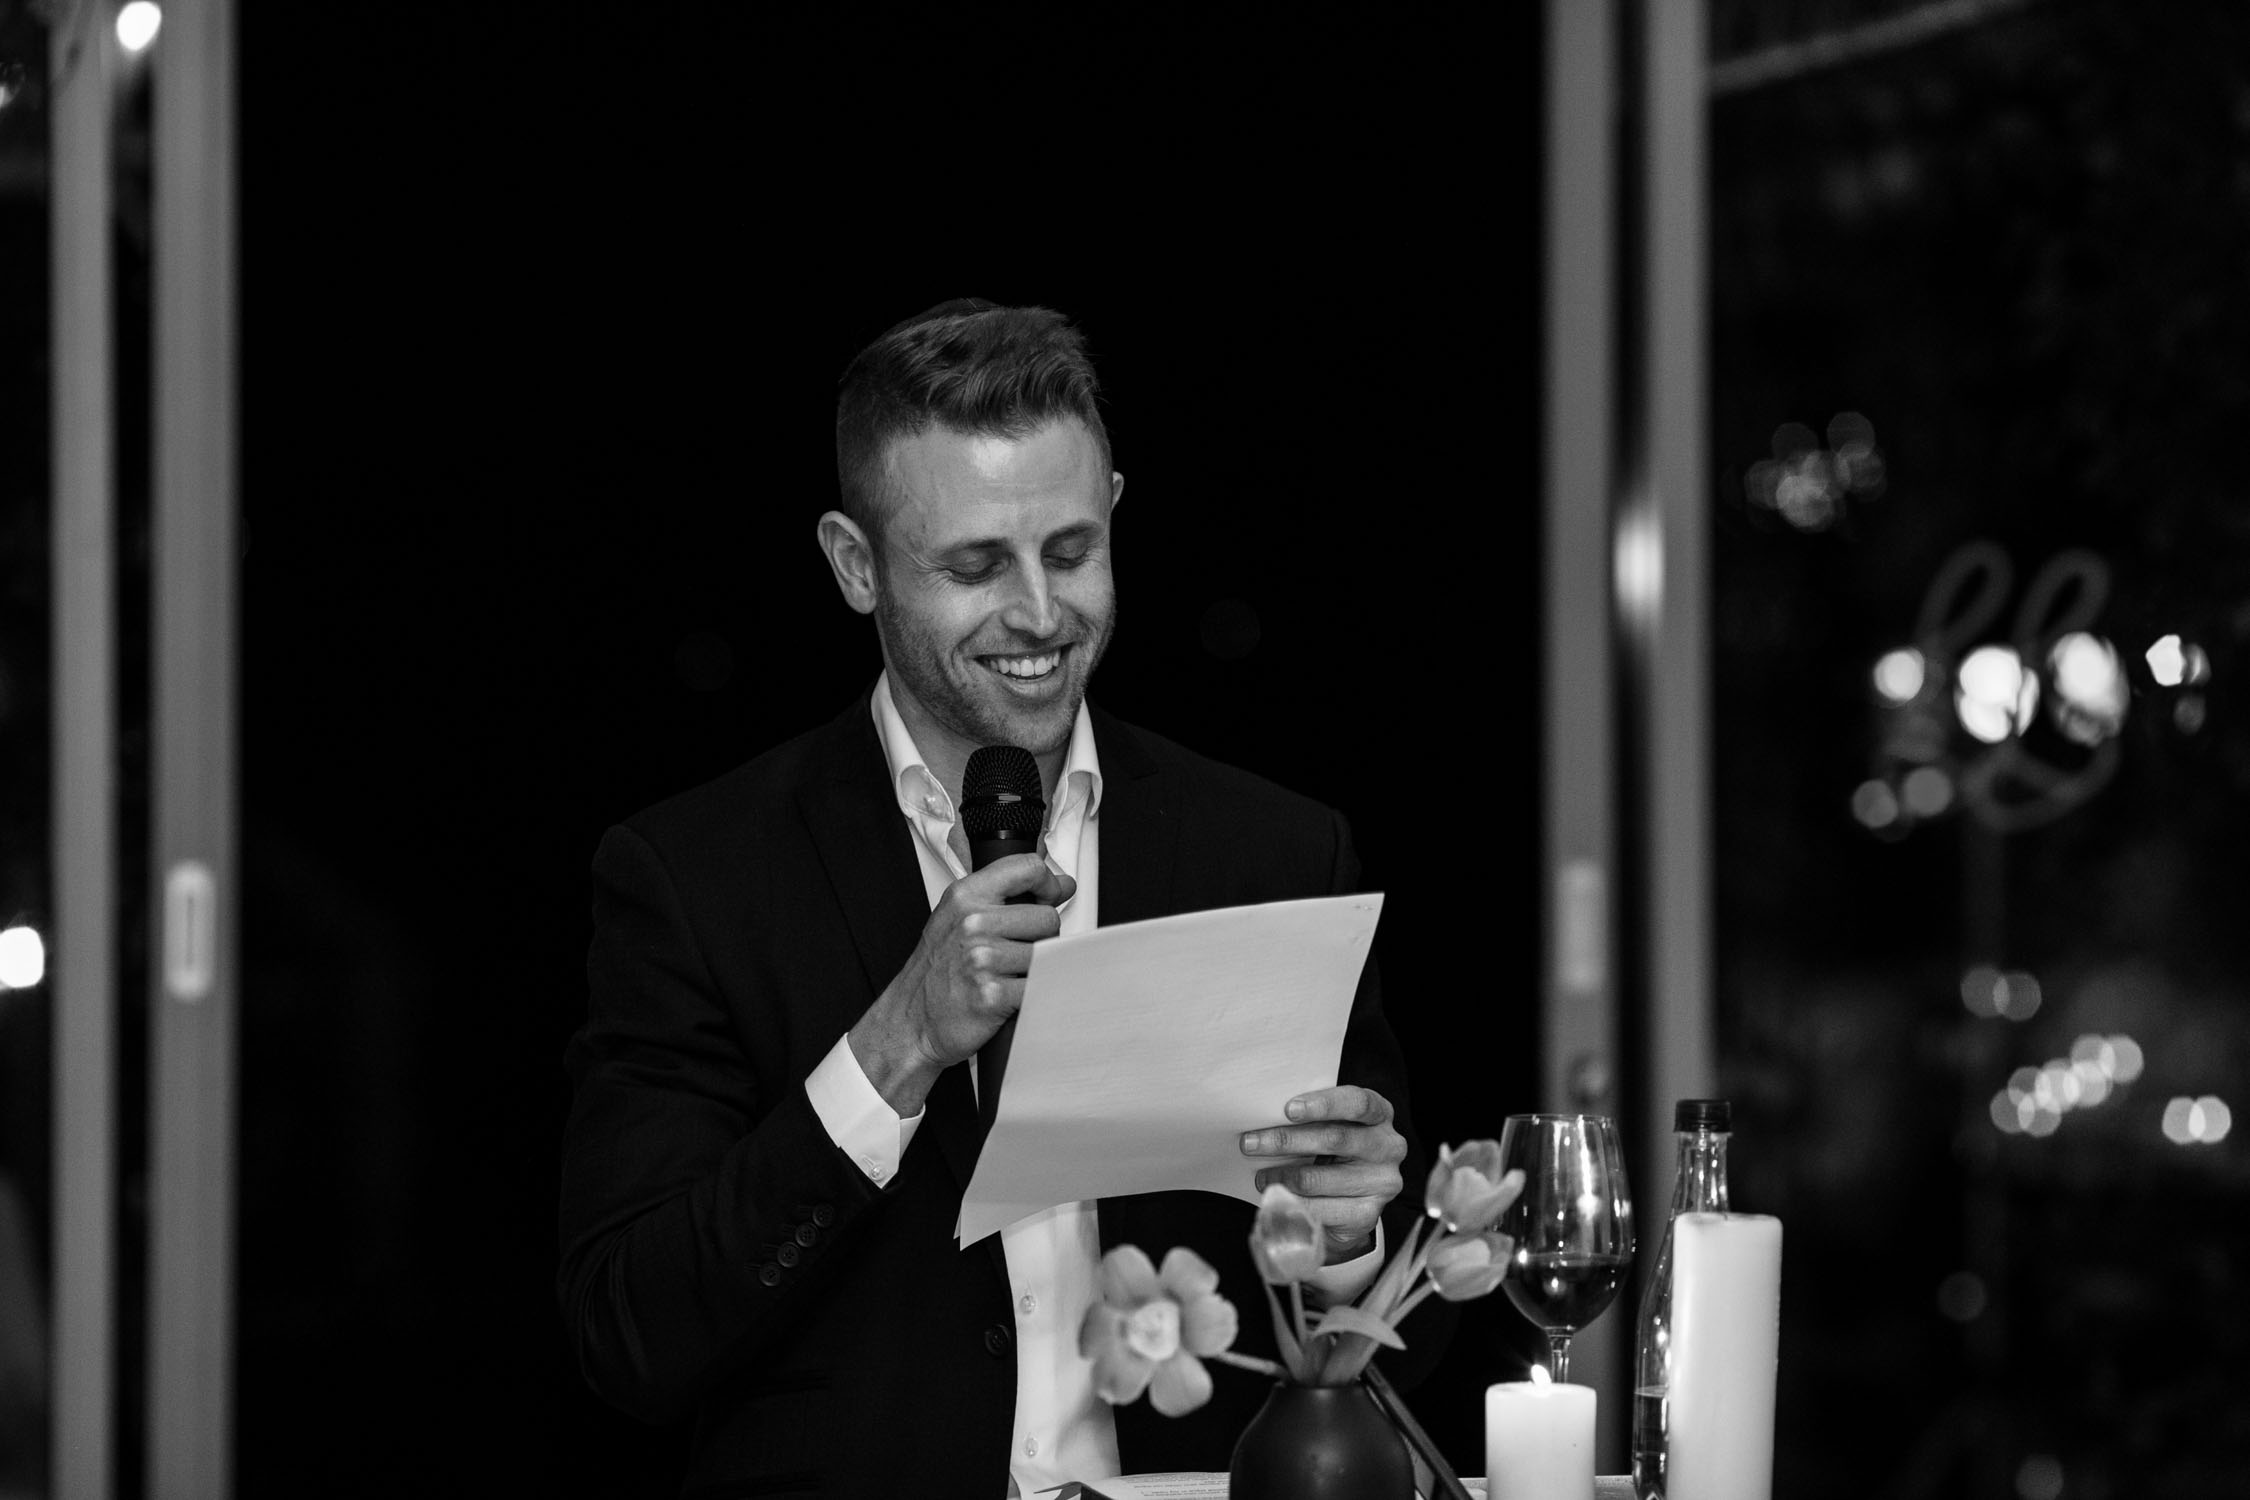 Emotional groom saying his wedding speech